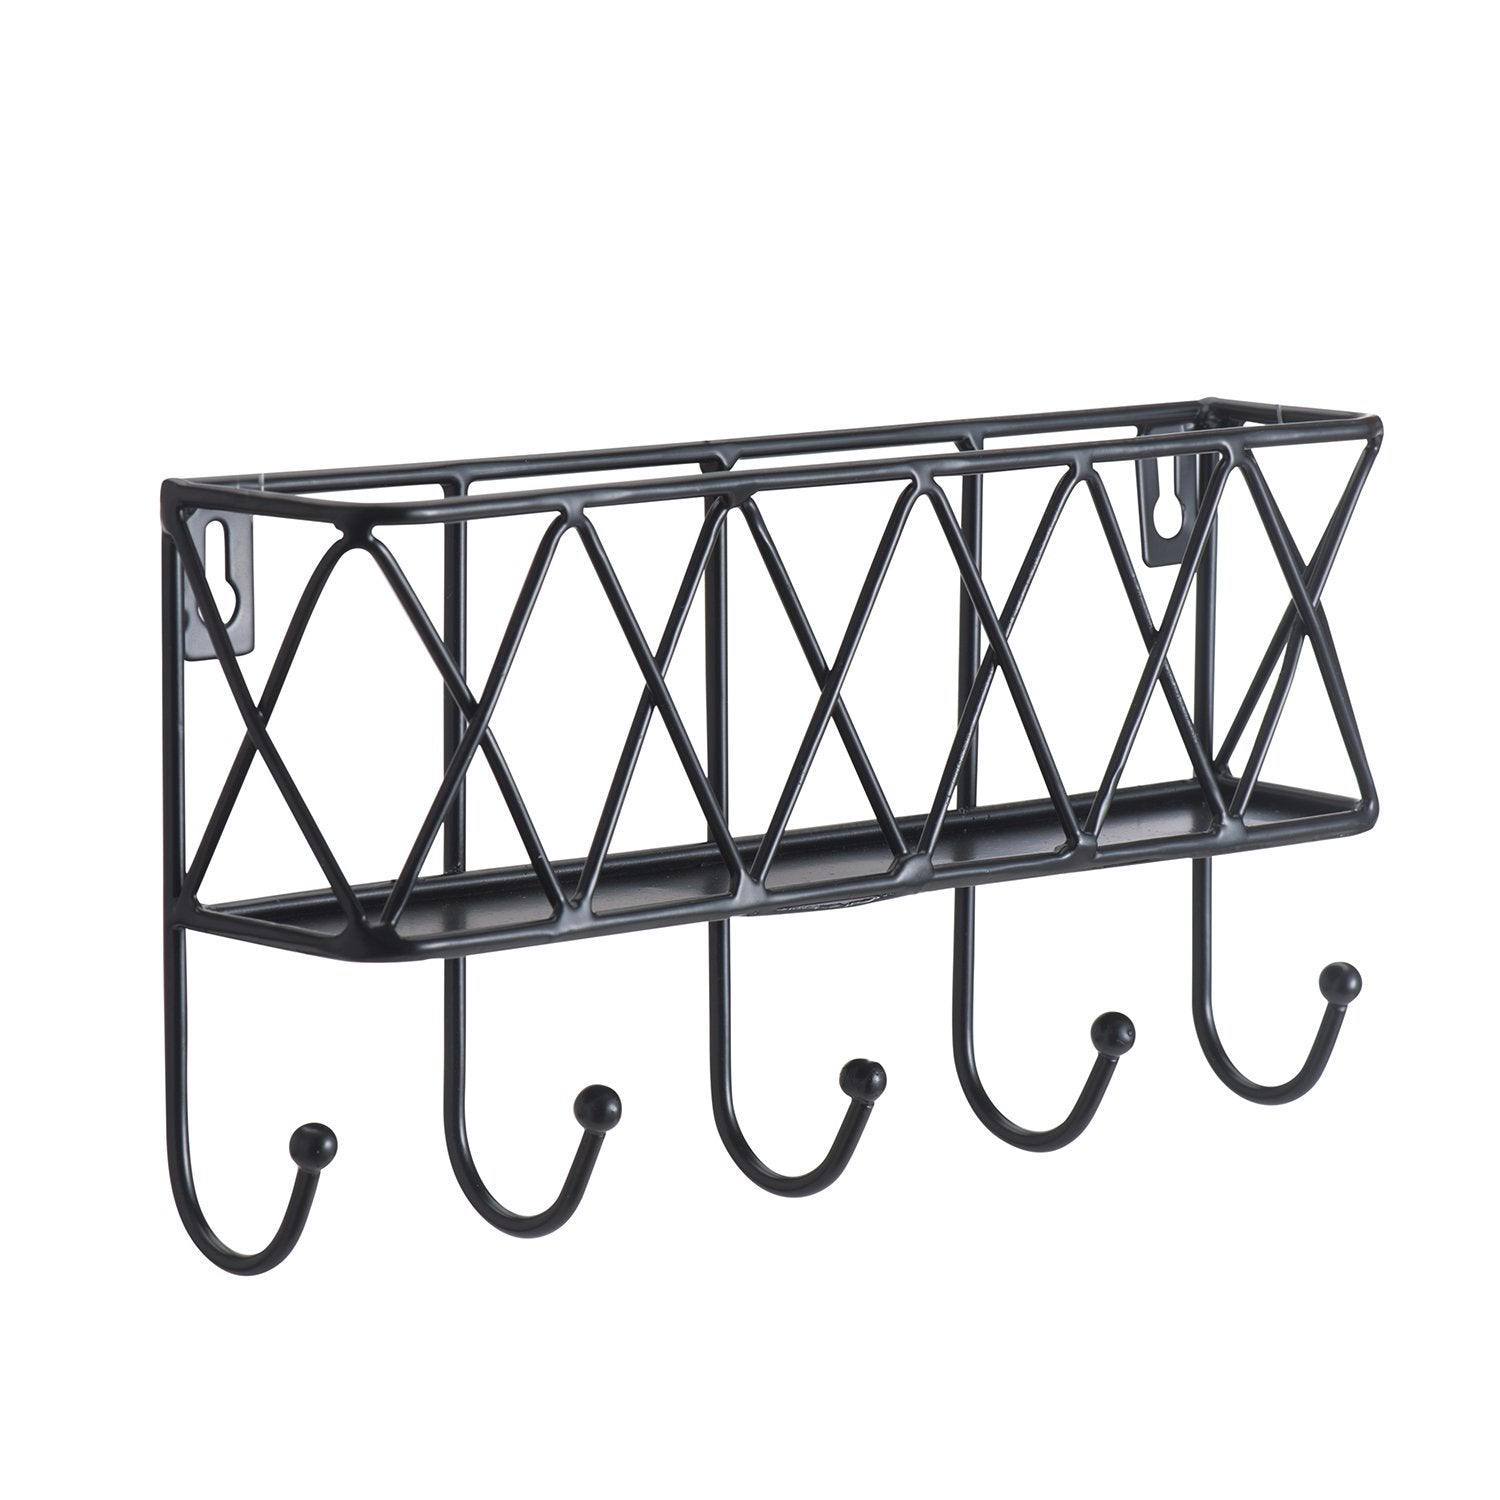 Letter Holder Organizer, Mail Sorter Storage Basket with Key Rack for Entryway, Kitchen - Wall Mounted, Metal, Black (basket key rack 002)